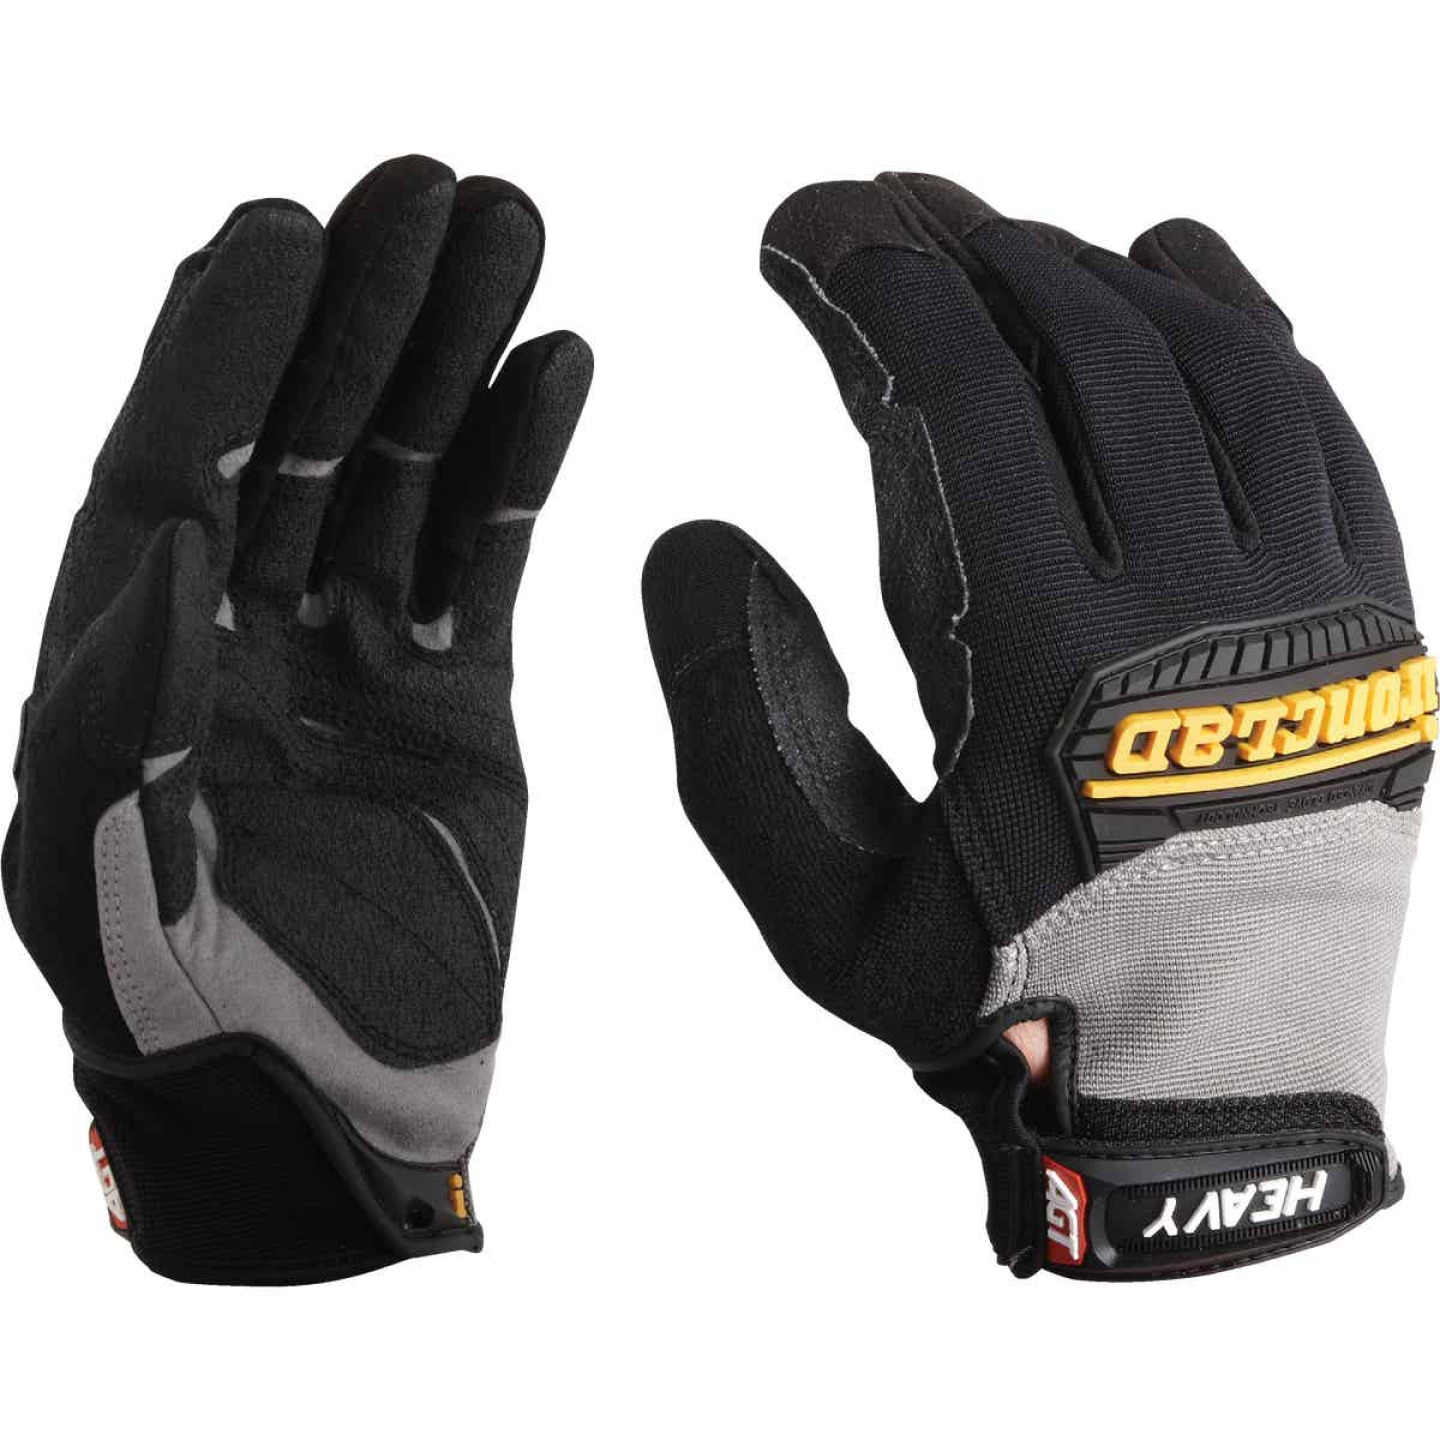 Ironclad Heavy Utility Men'sLarge Synthetic Leather High Performance Glove Image 3